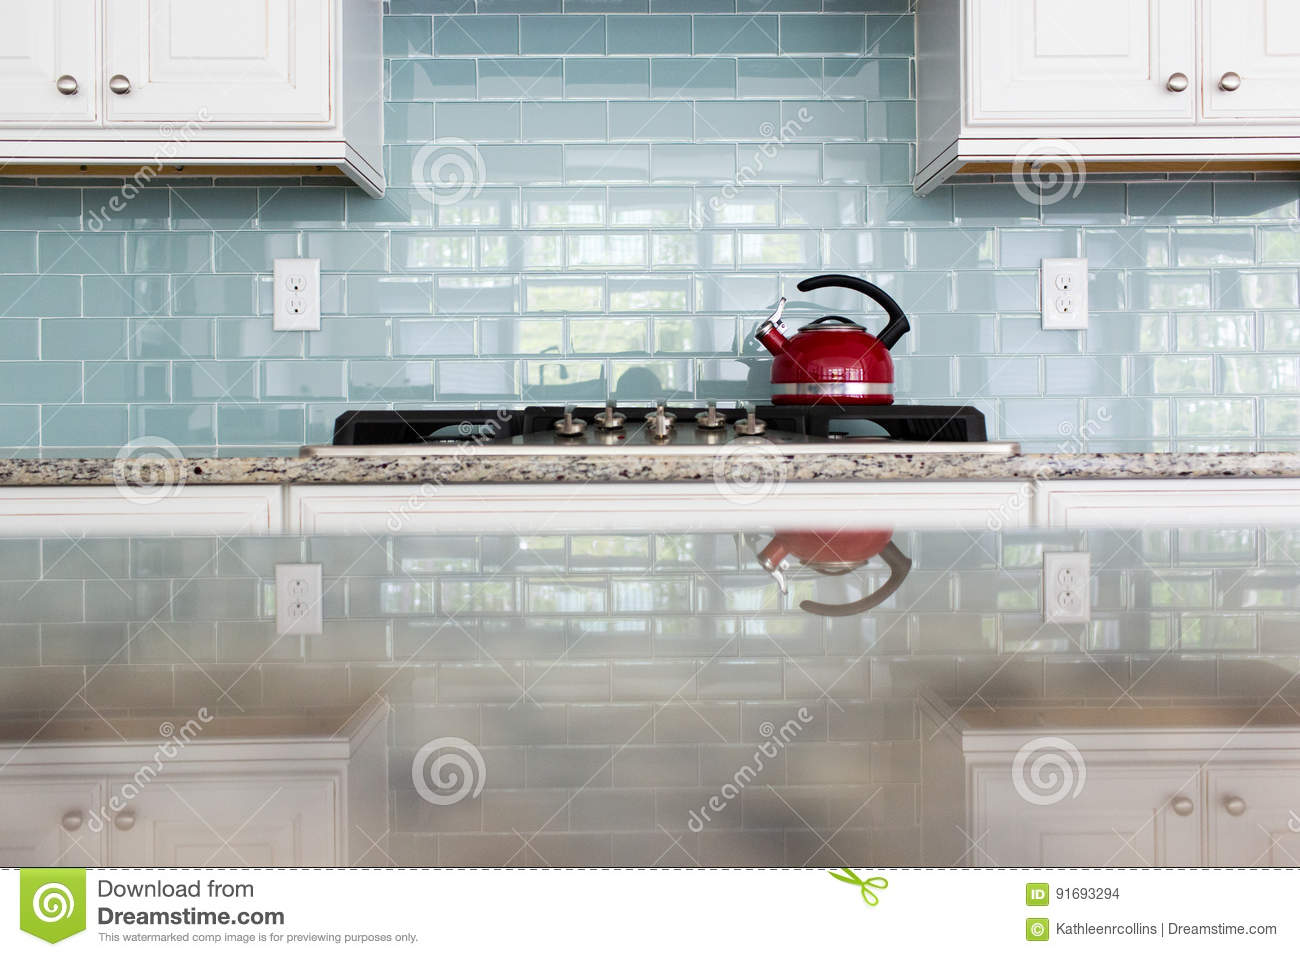 Subway Tile Stock Photos - Royalty Free Pictures